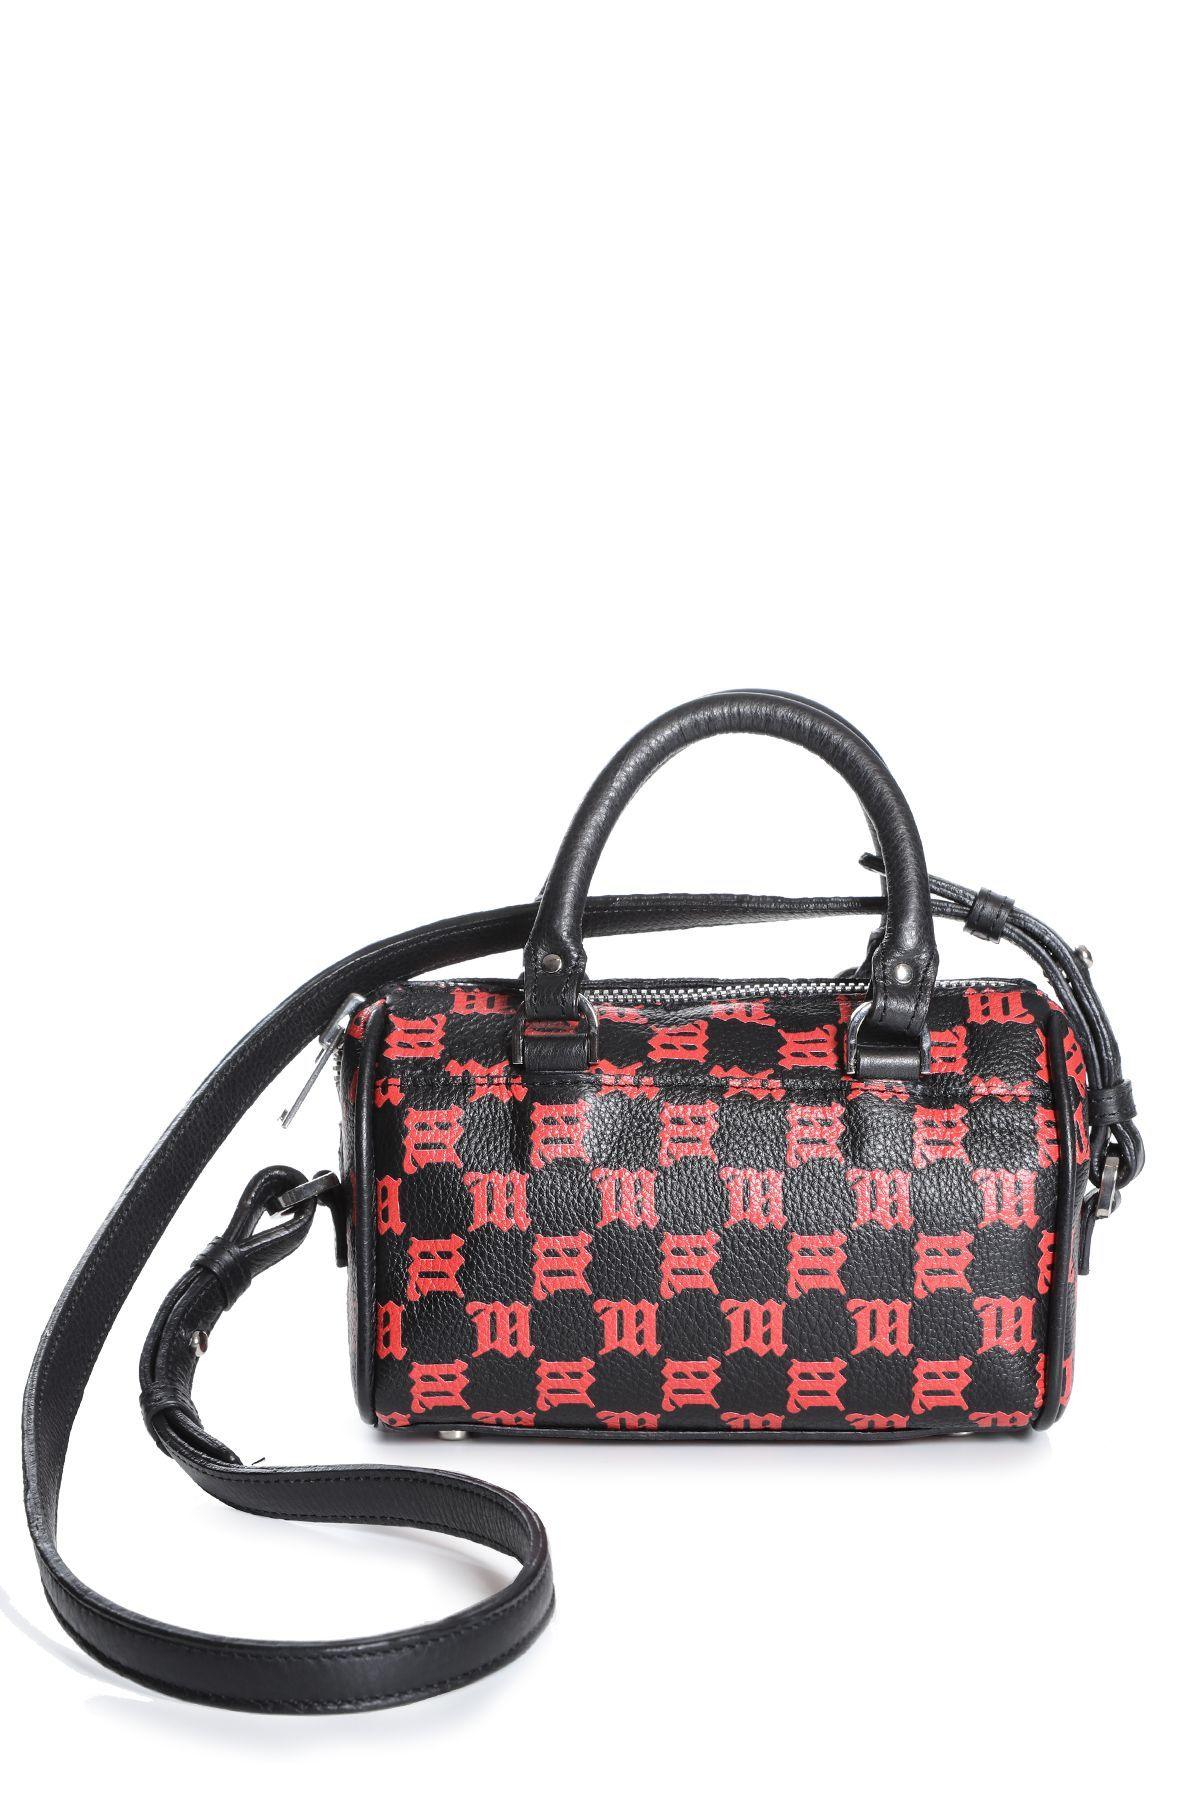 158f173a2fb MISBHV MONOGRAM SHOULDER BAG.  misbhv  bags  shoulder bags  leather ...